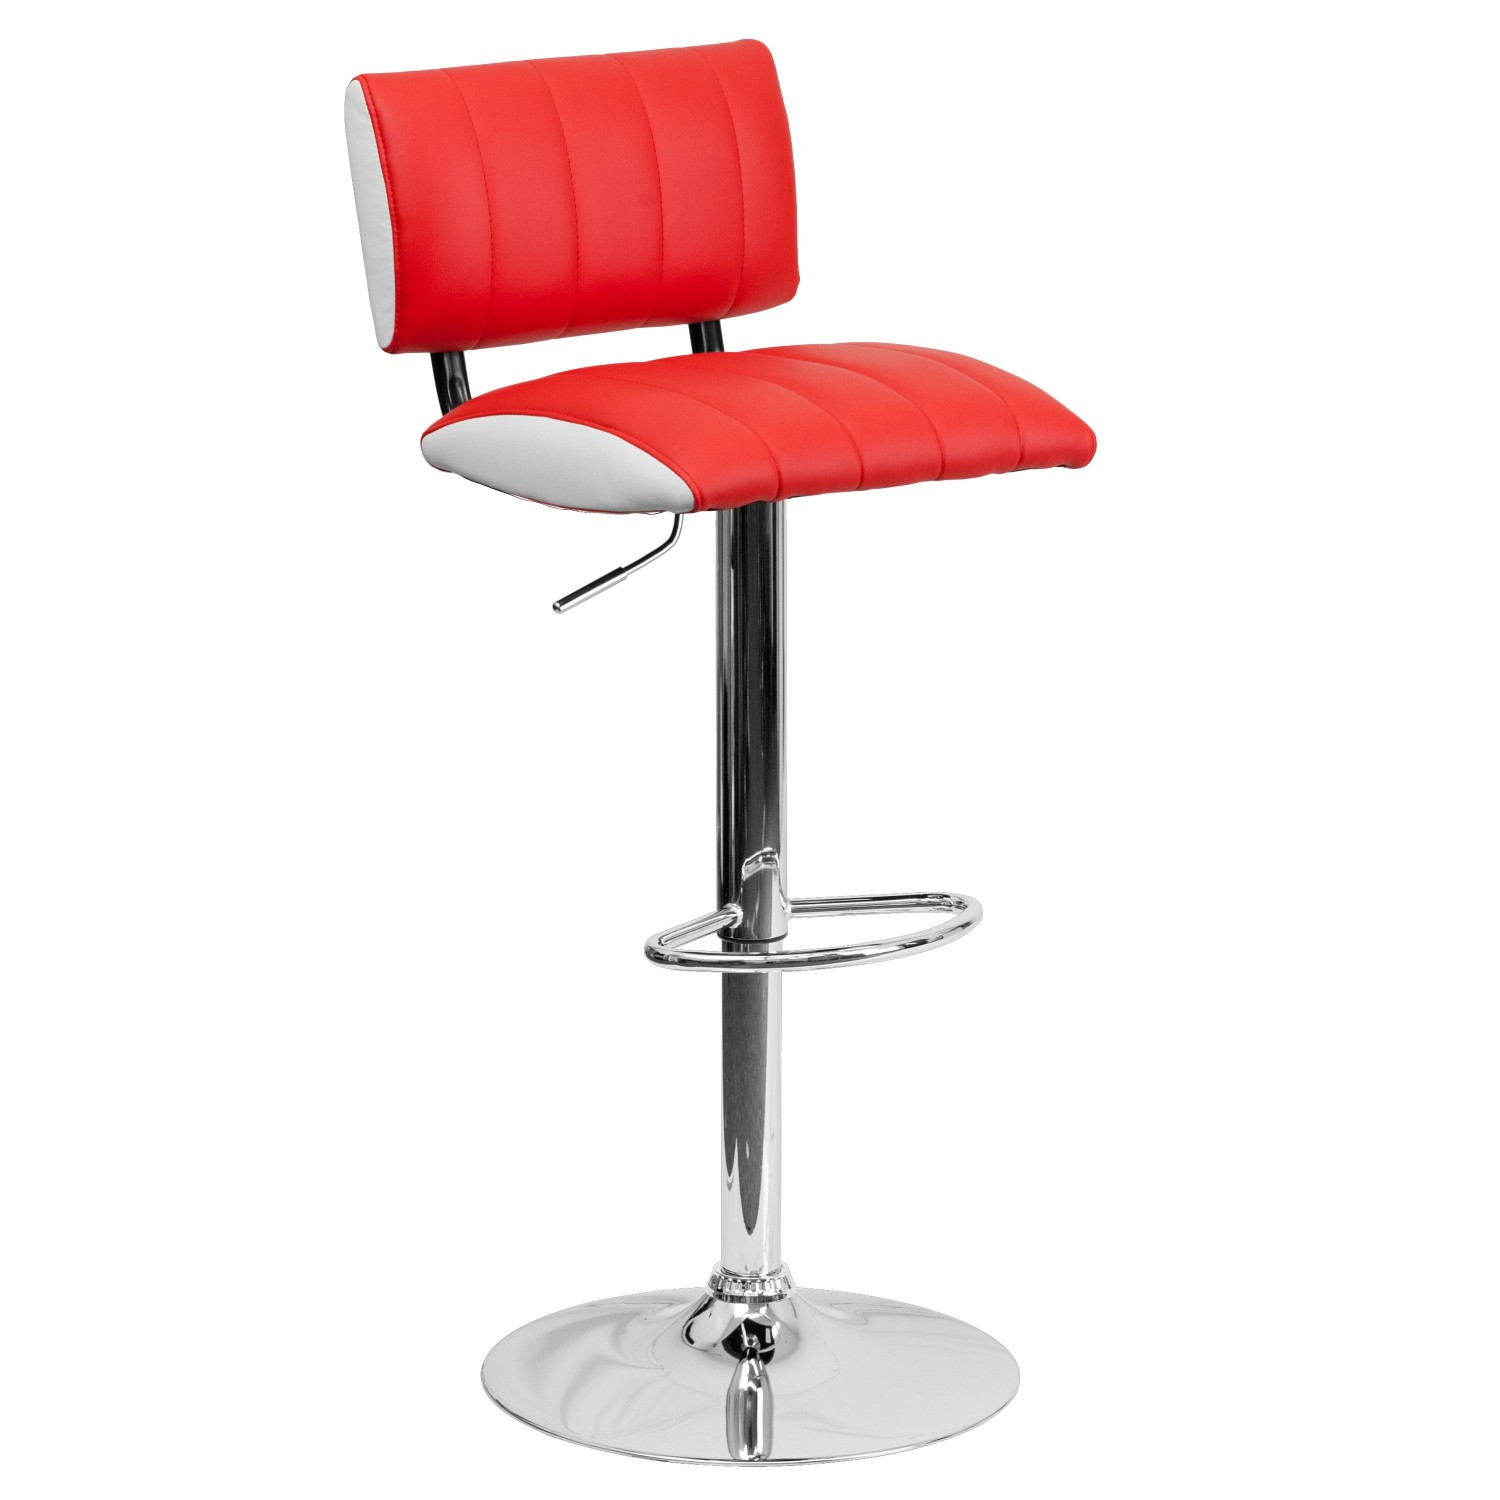 Flash Furniture CH-122150-RED-GG Contemporary Two Tone Red and White Vinyl Adjustable Height Bar Stool